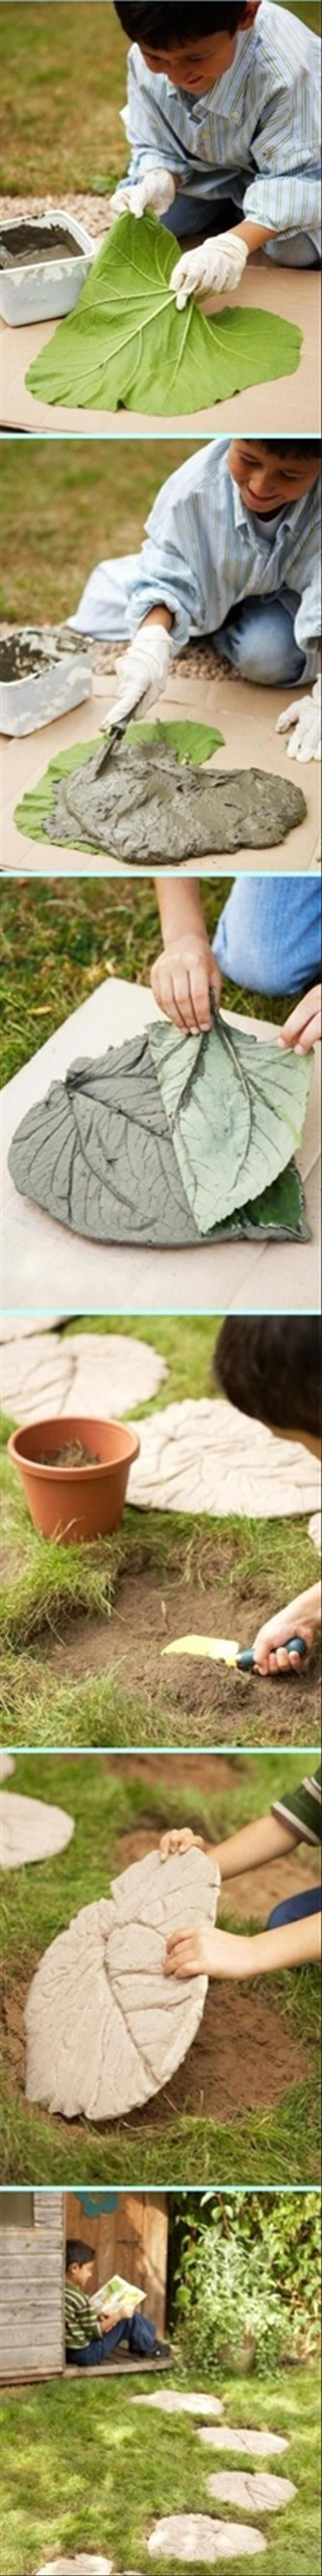 Dump A Day Simple Do It Yourself Craft Ideas - 42 Pics